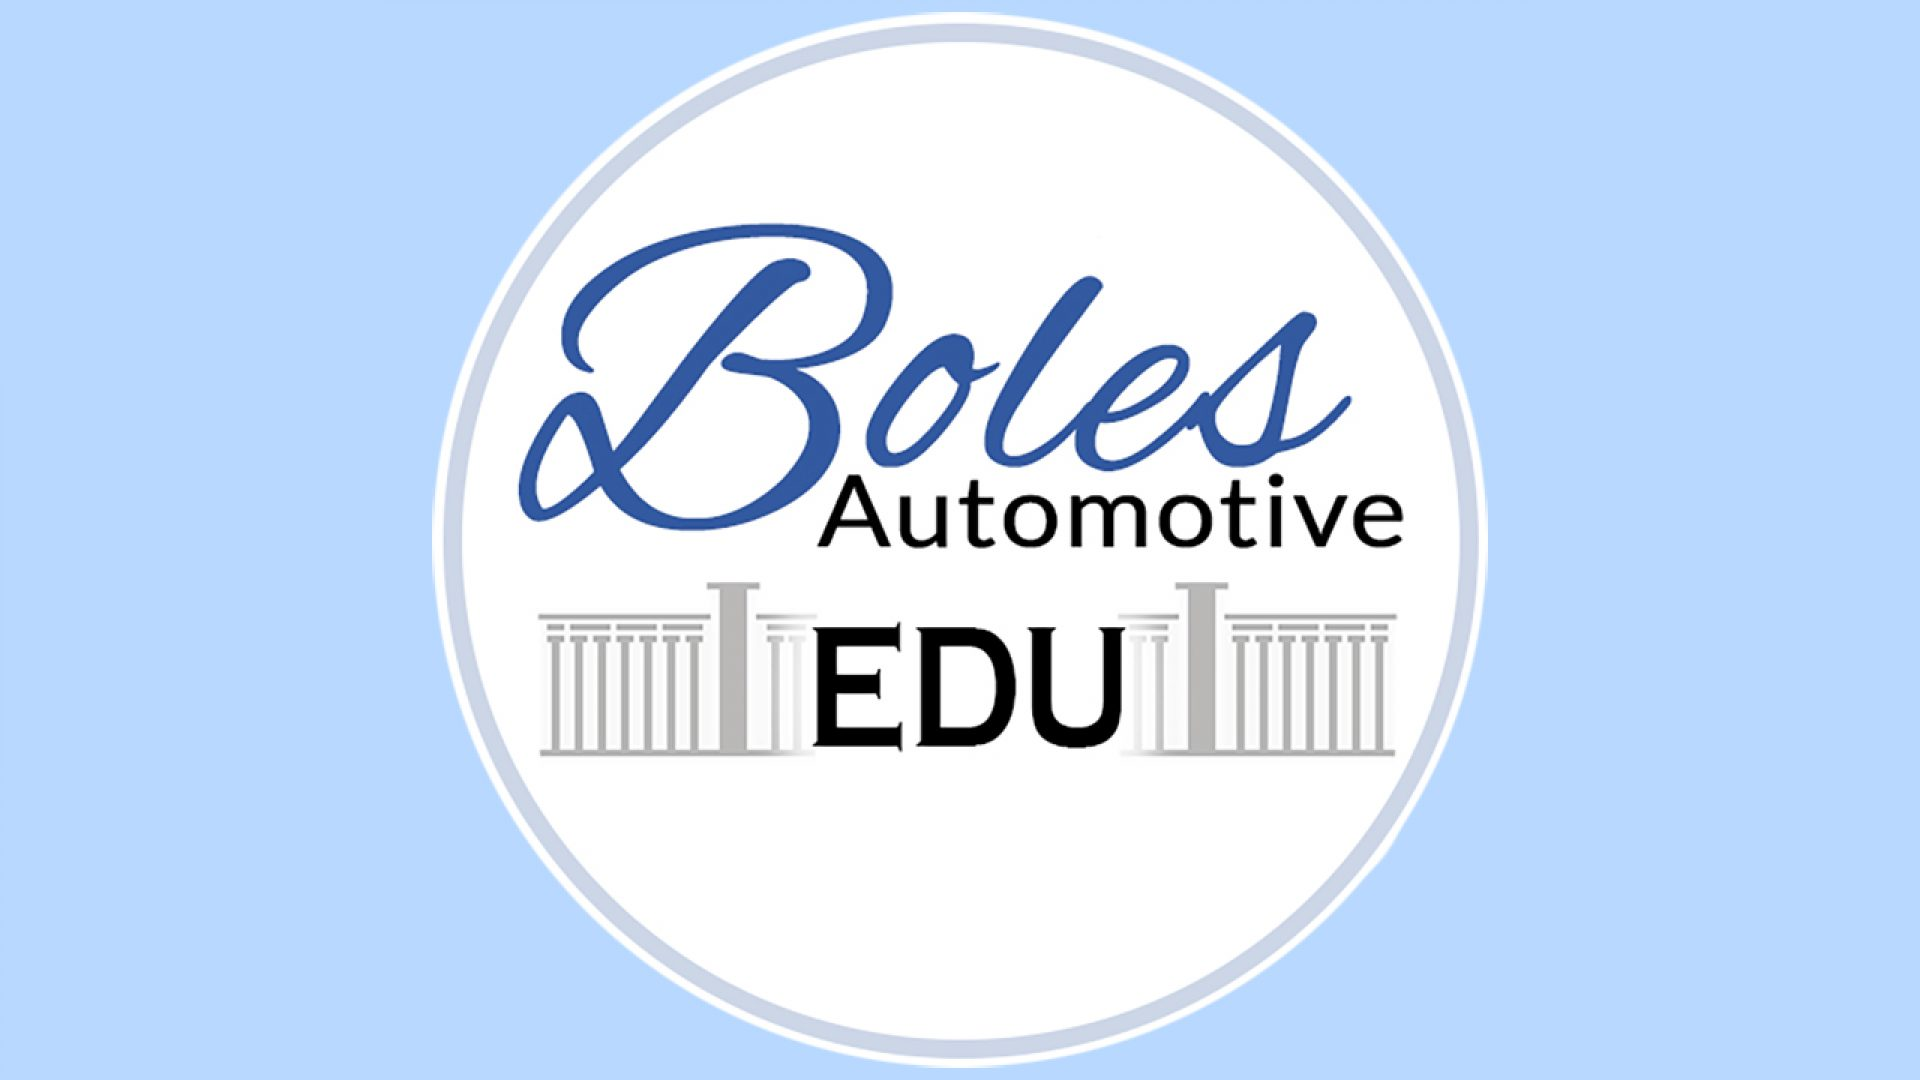 Automotive Educational Courses and Training